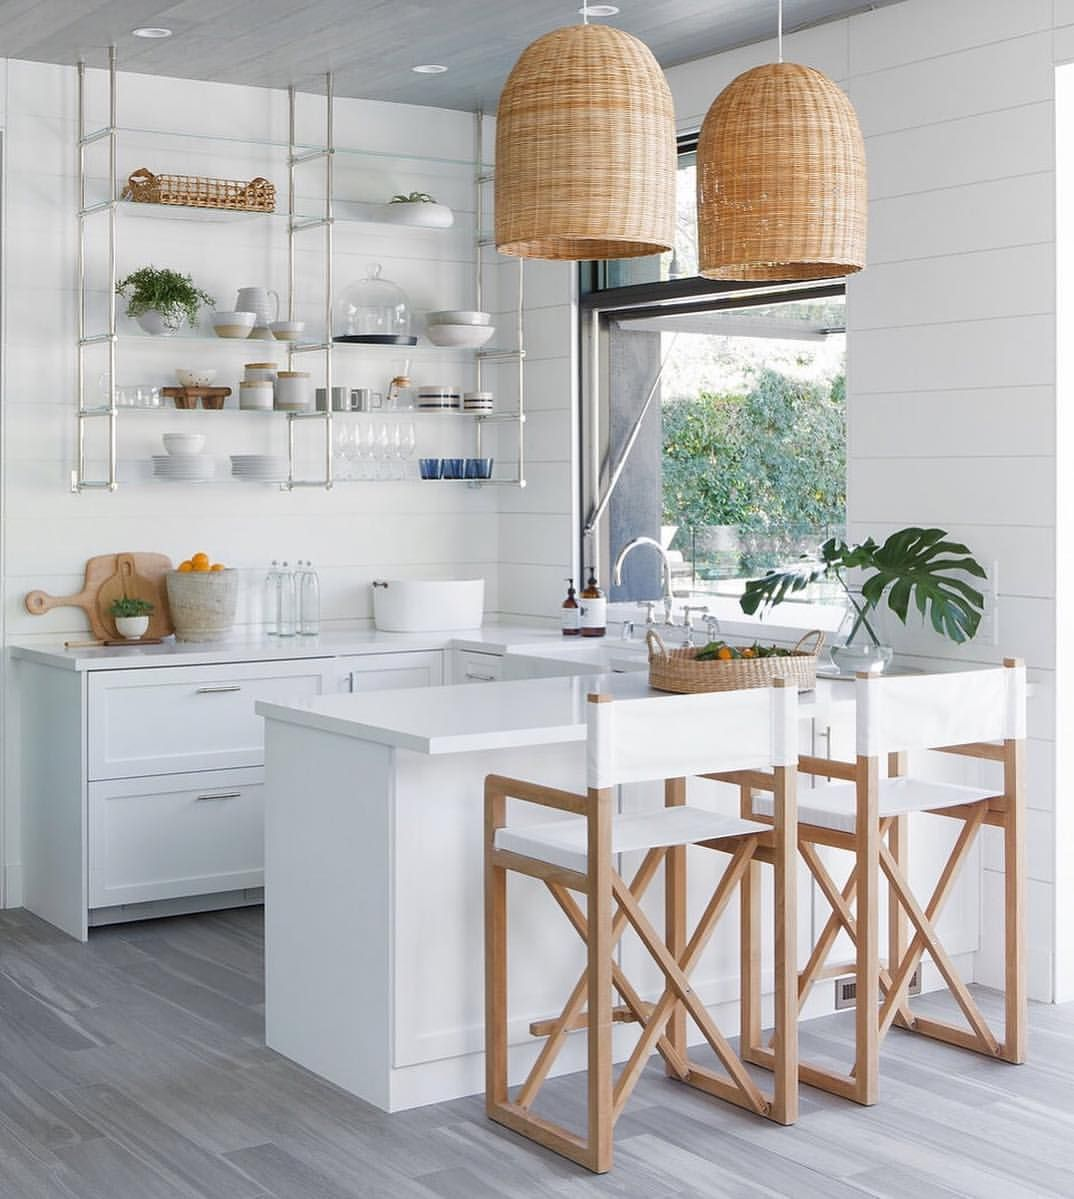 studio lifestyle white kitchen floating shelves kitchen white modern kitchen kitchen design on kitchen floating shelves id=25500